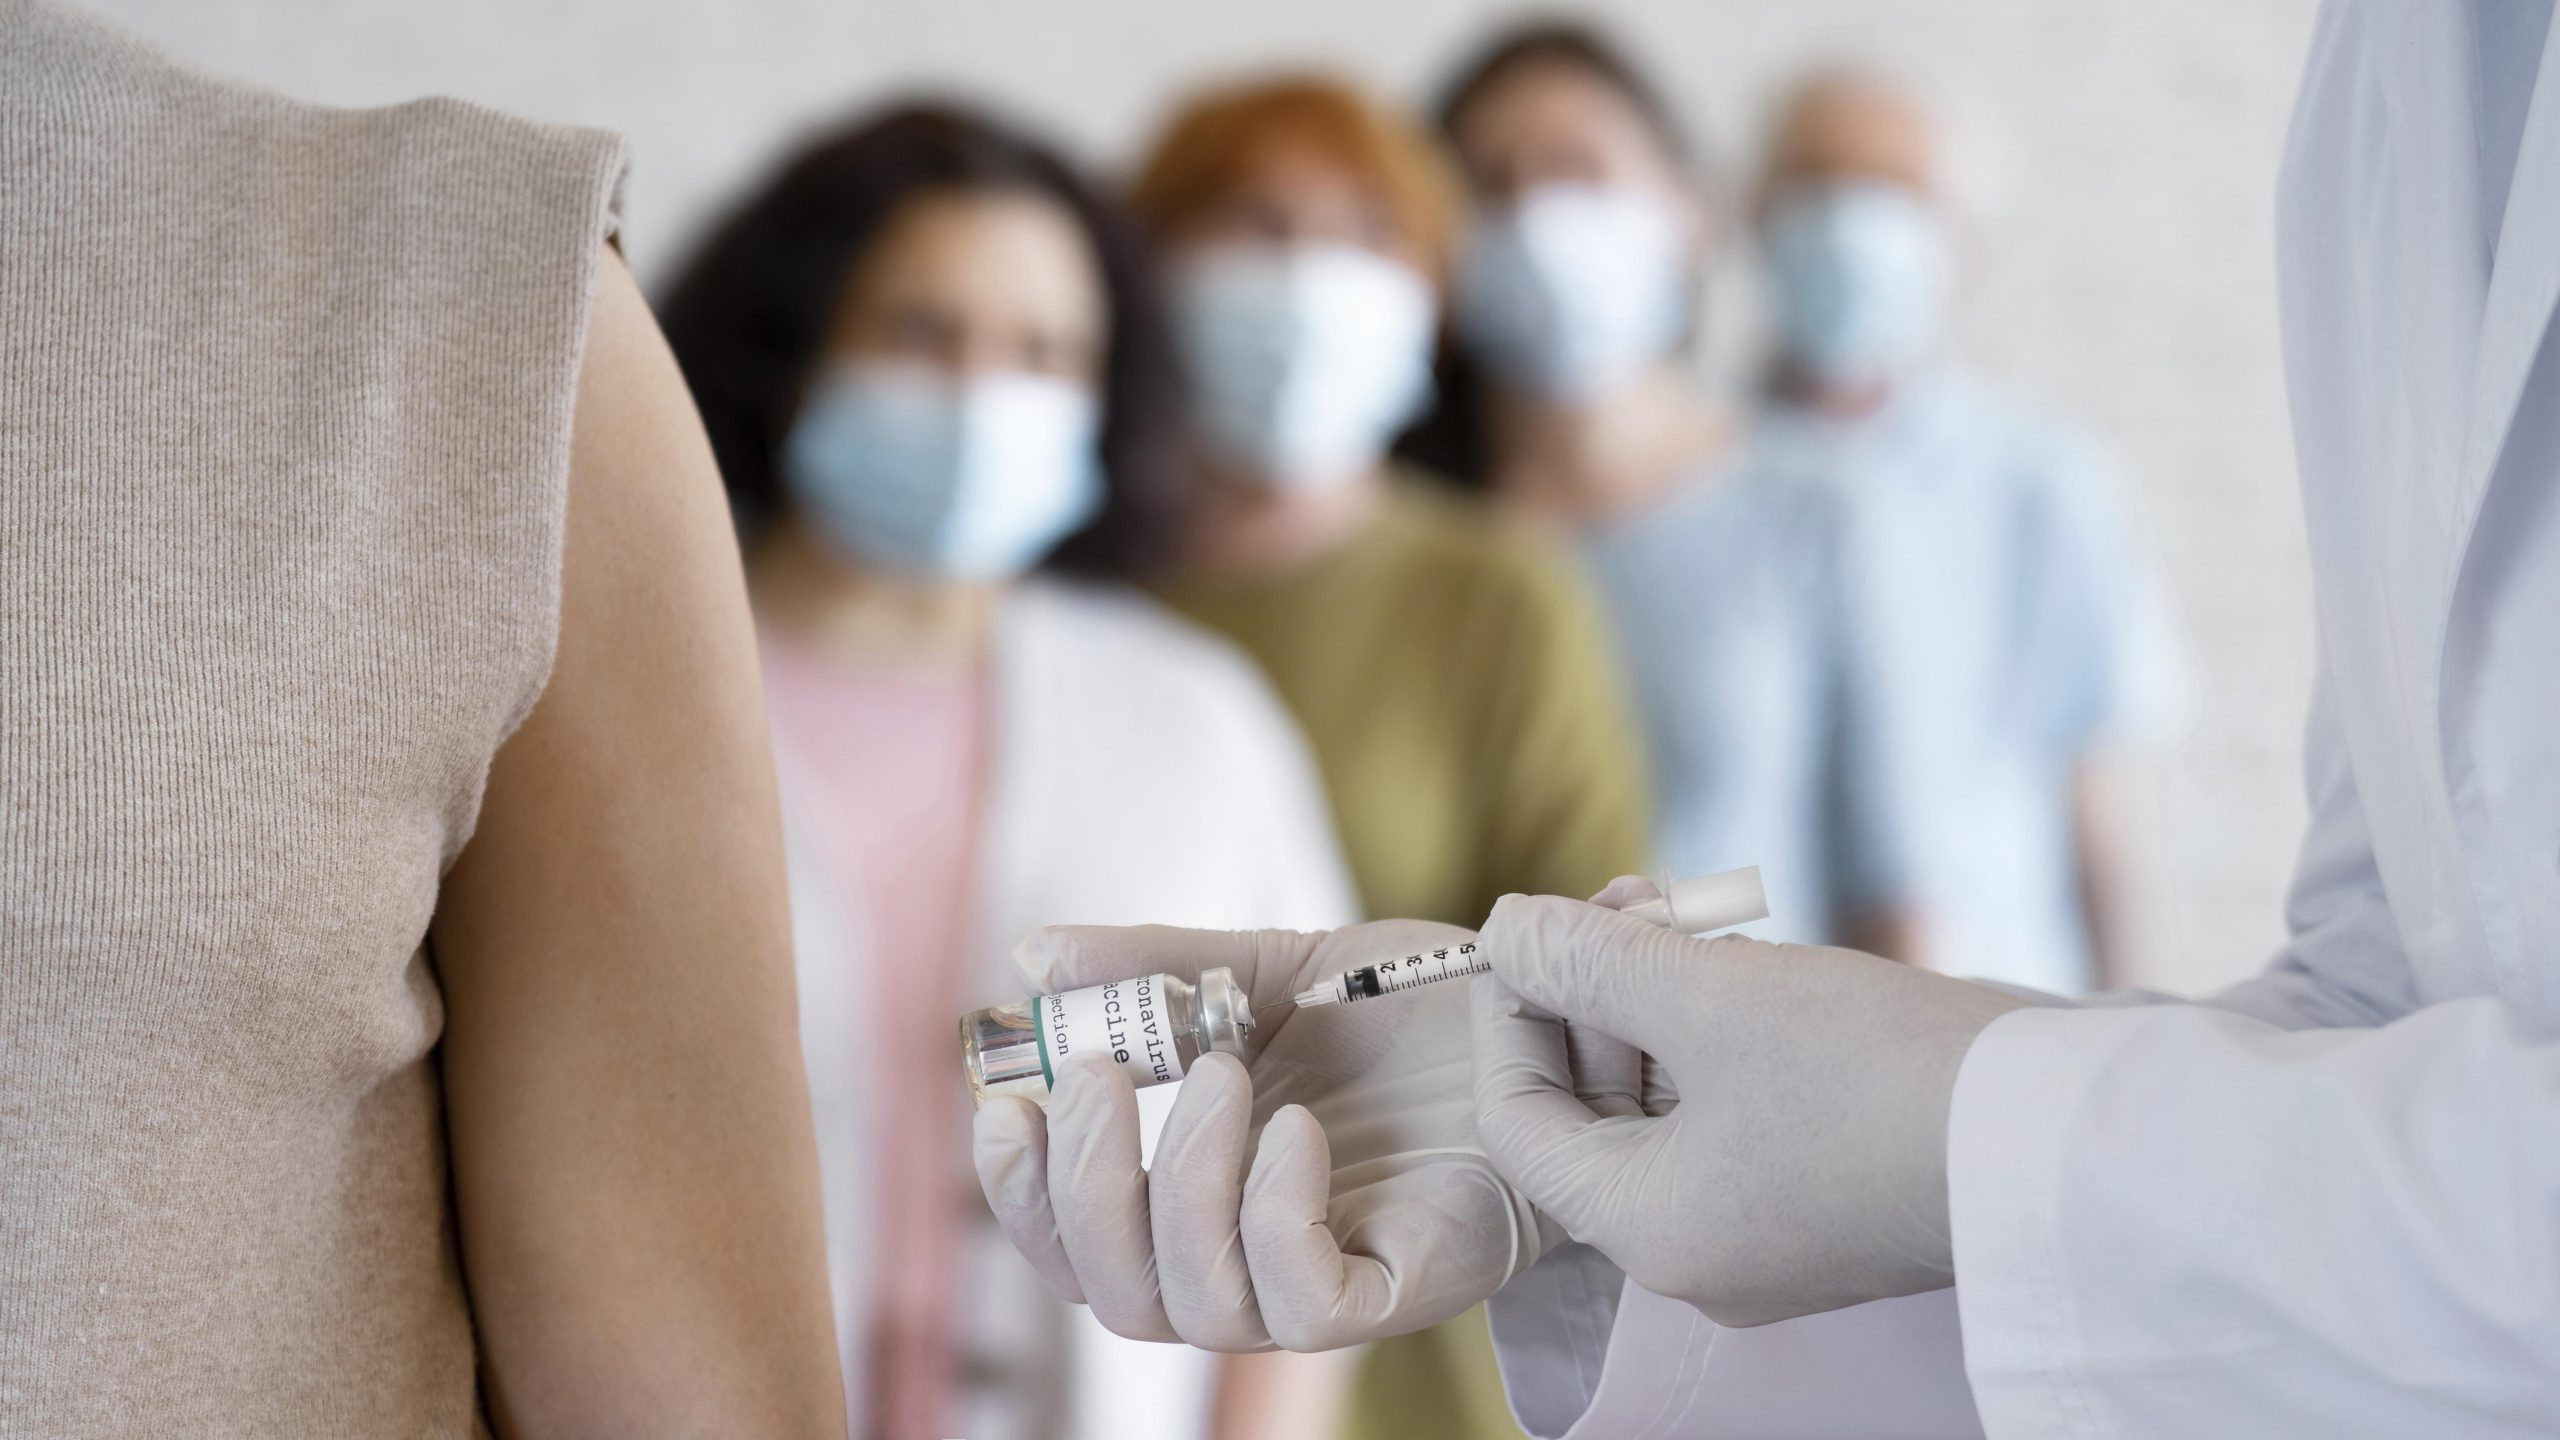 woman-getting-vaccine-shot-by-doctor